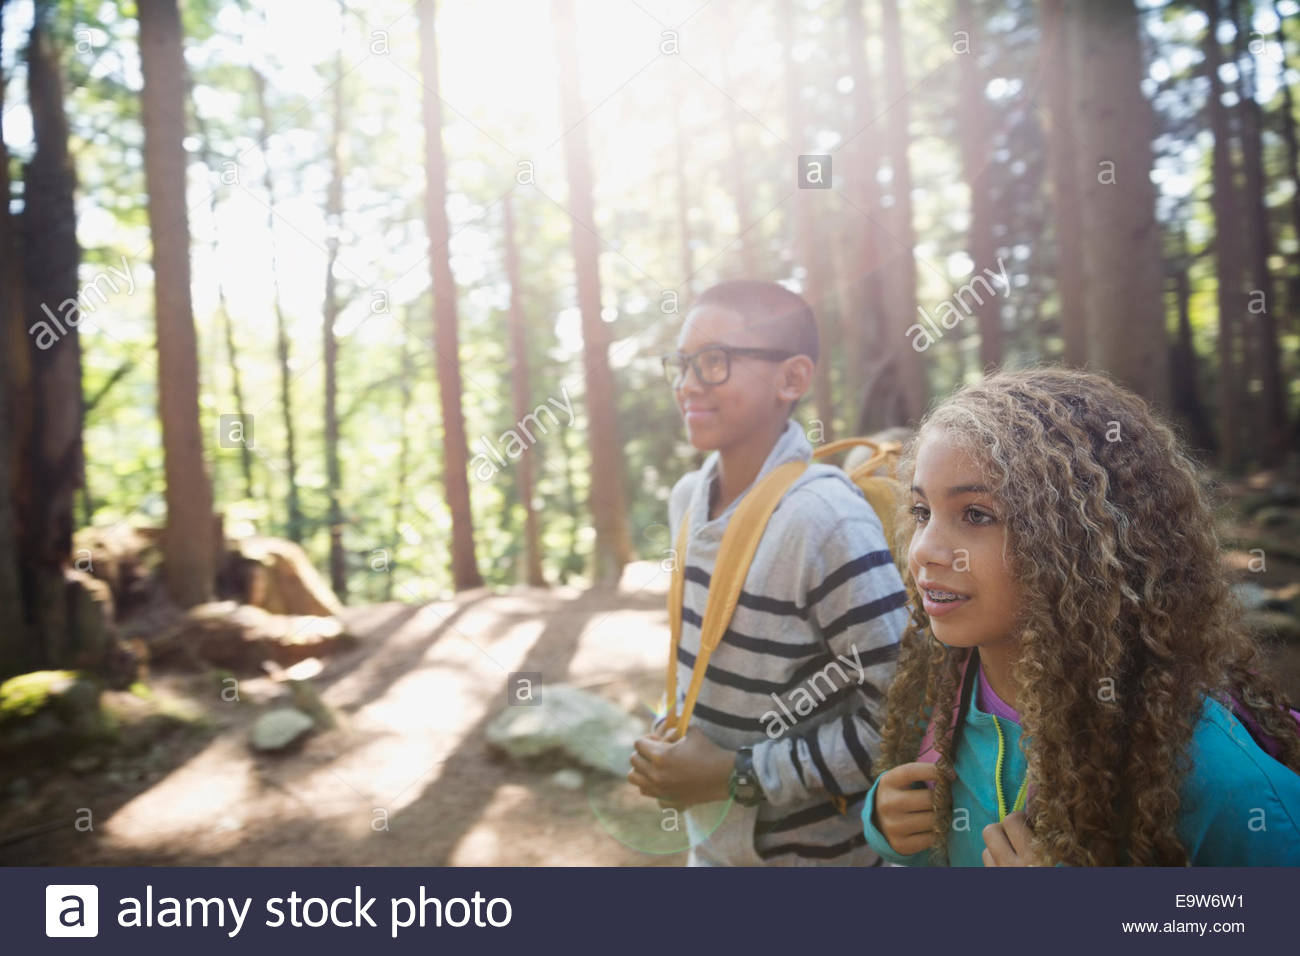 Boy and girl hiking in sunny woods - Stock Image